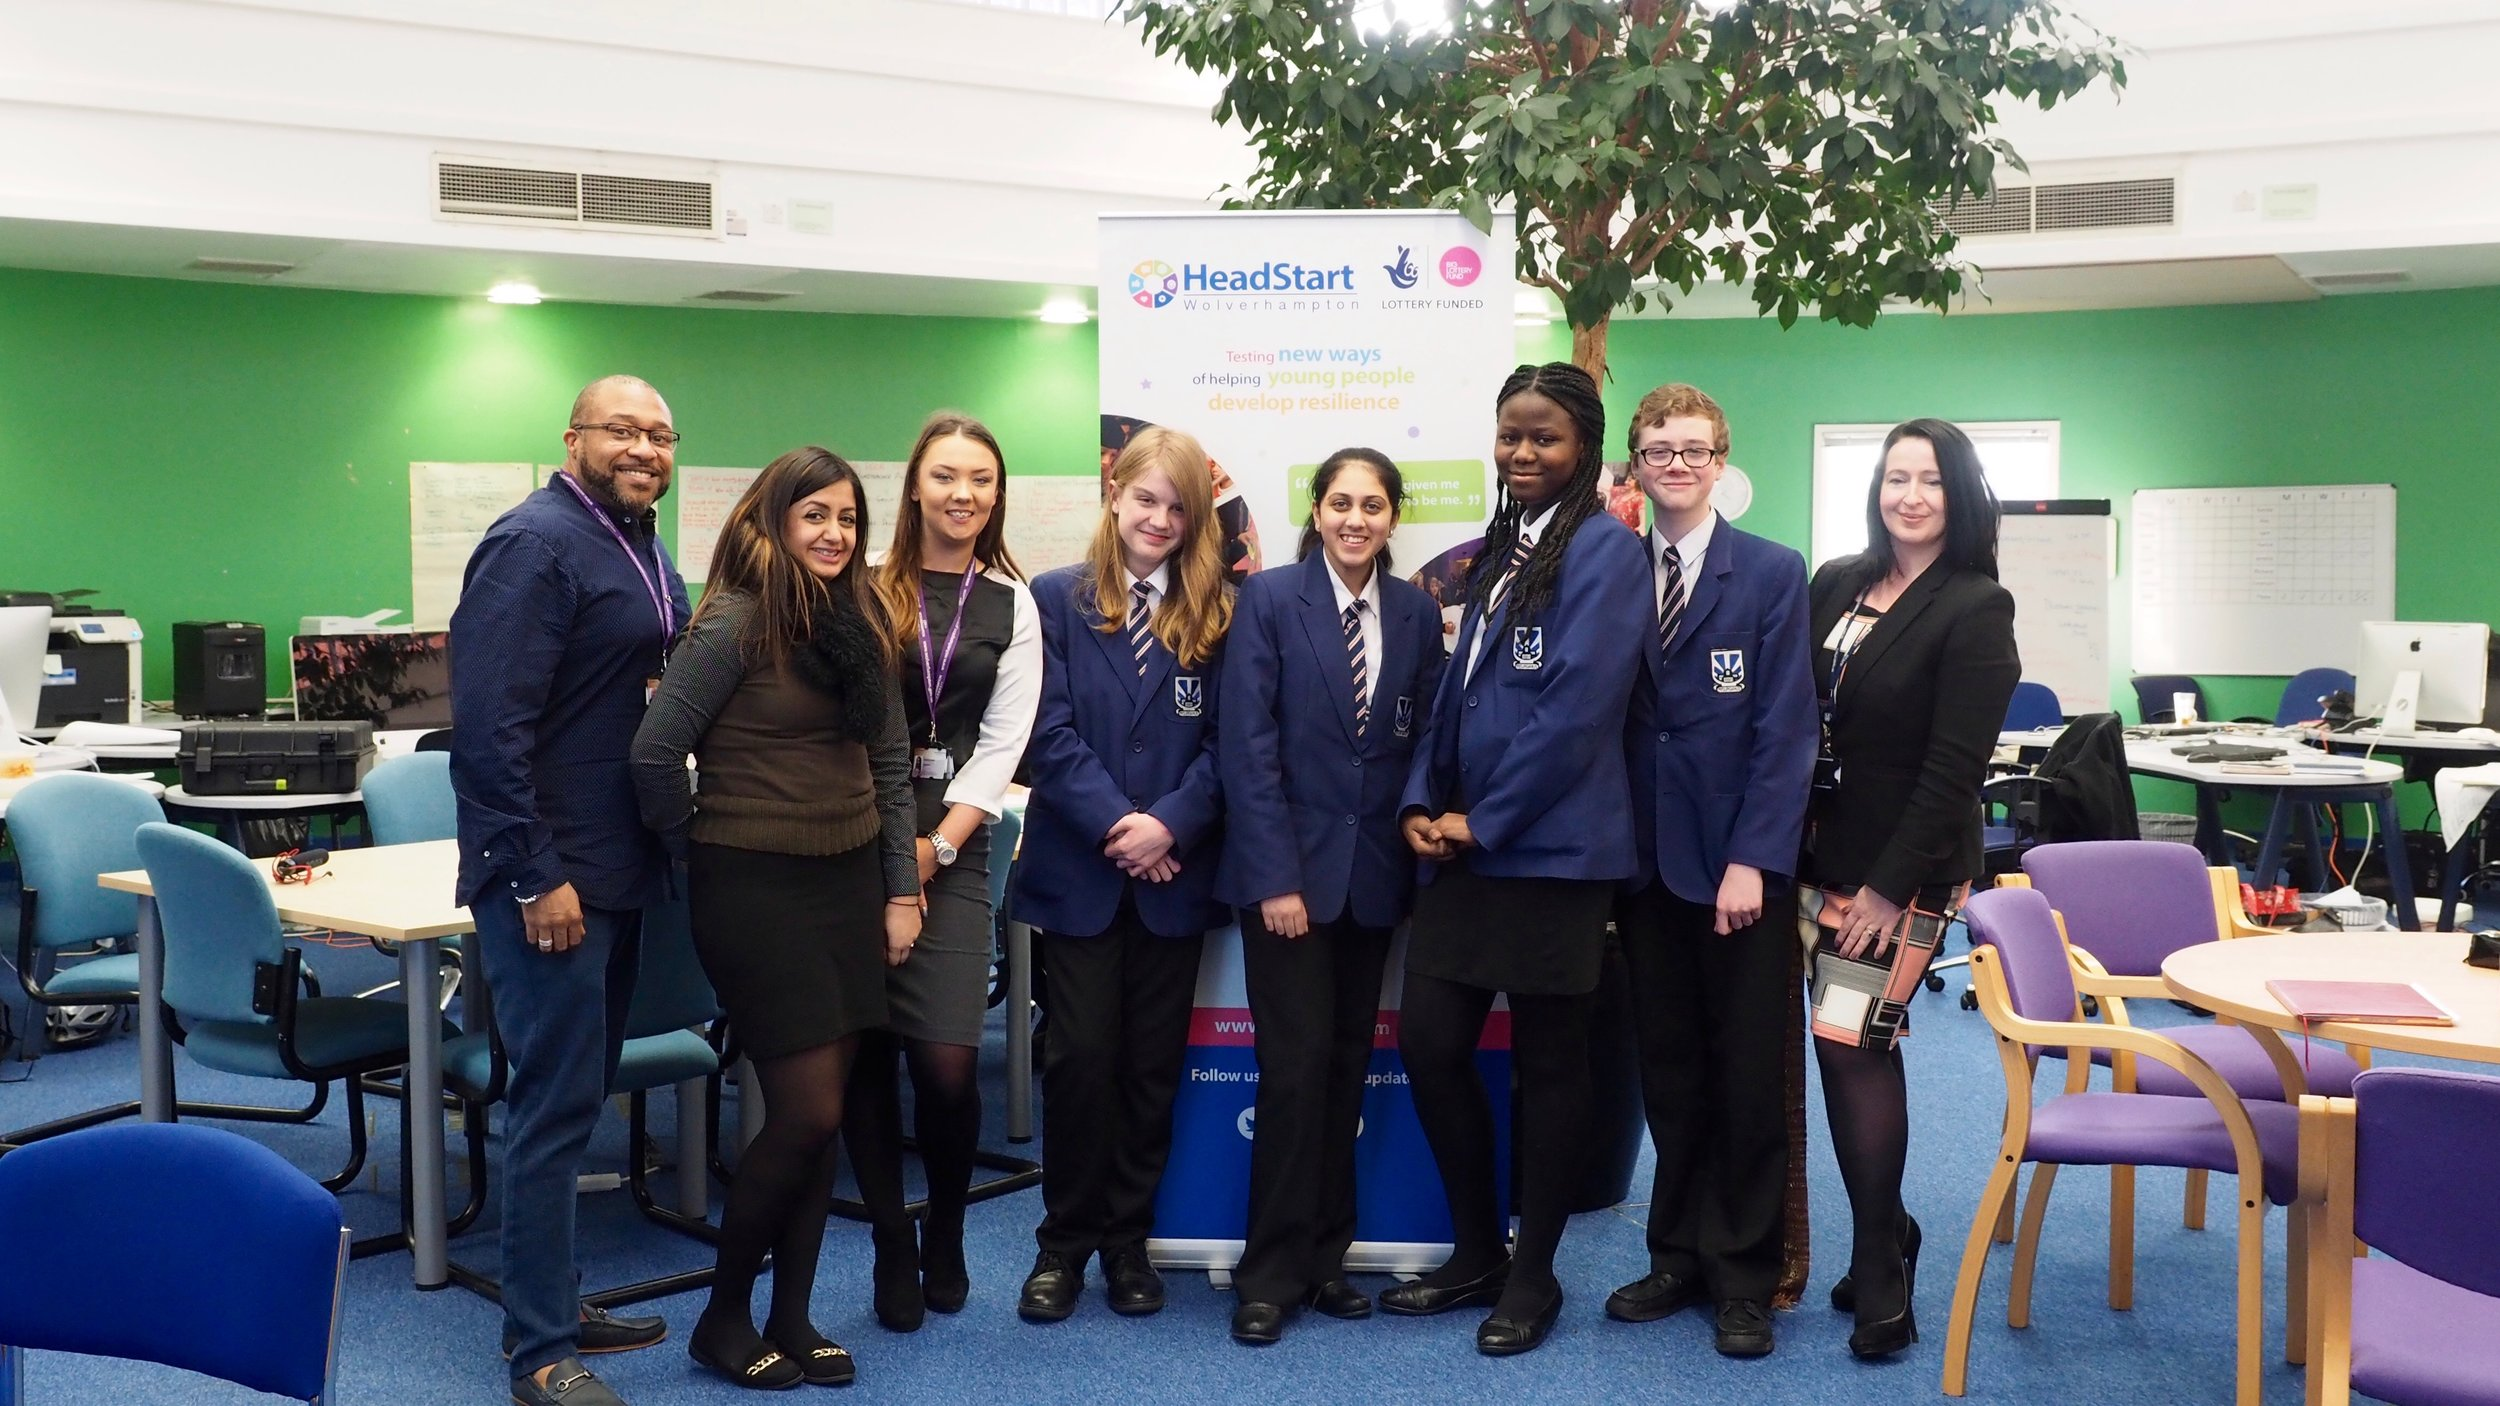 HeadStarters from Heath Park supported interviews for Youth Engagement roles at HeadStart HQ.